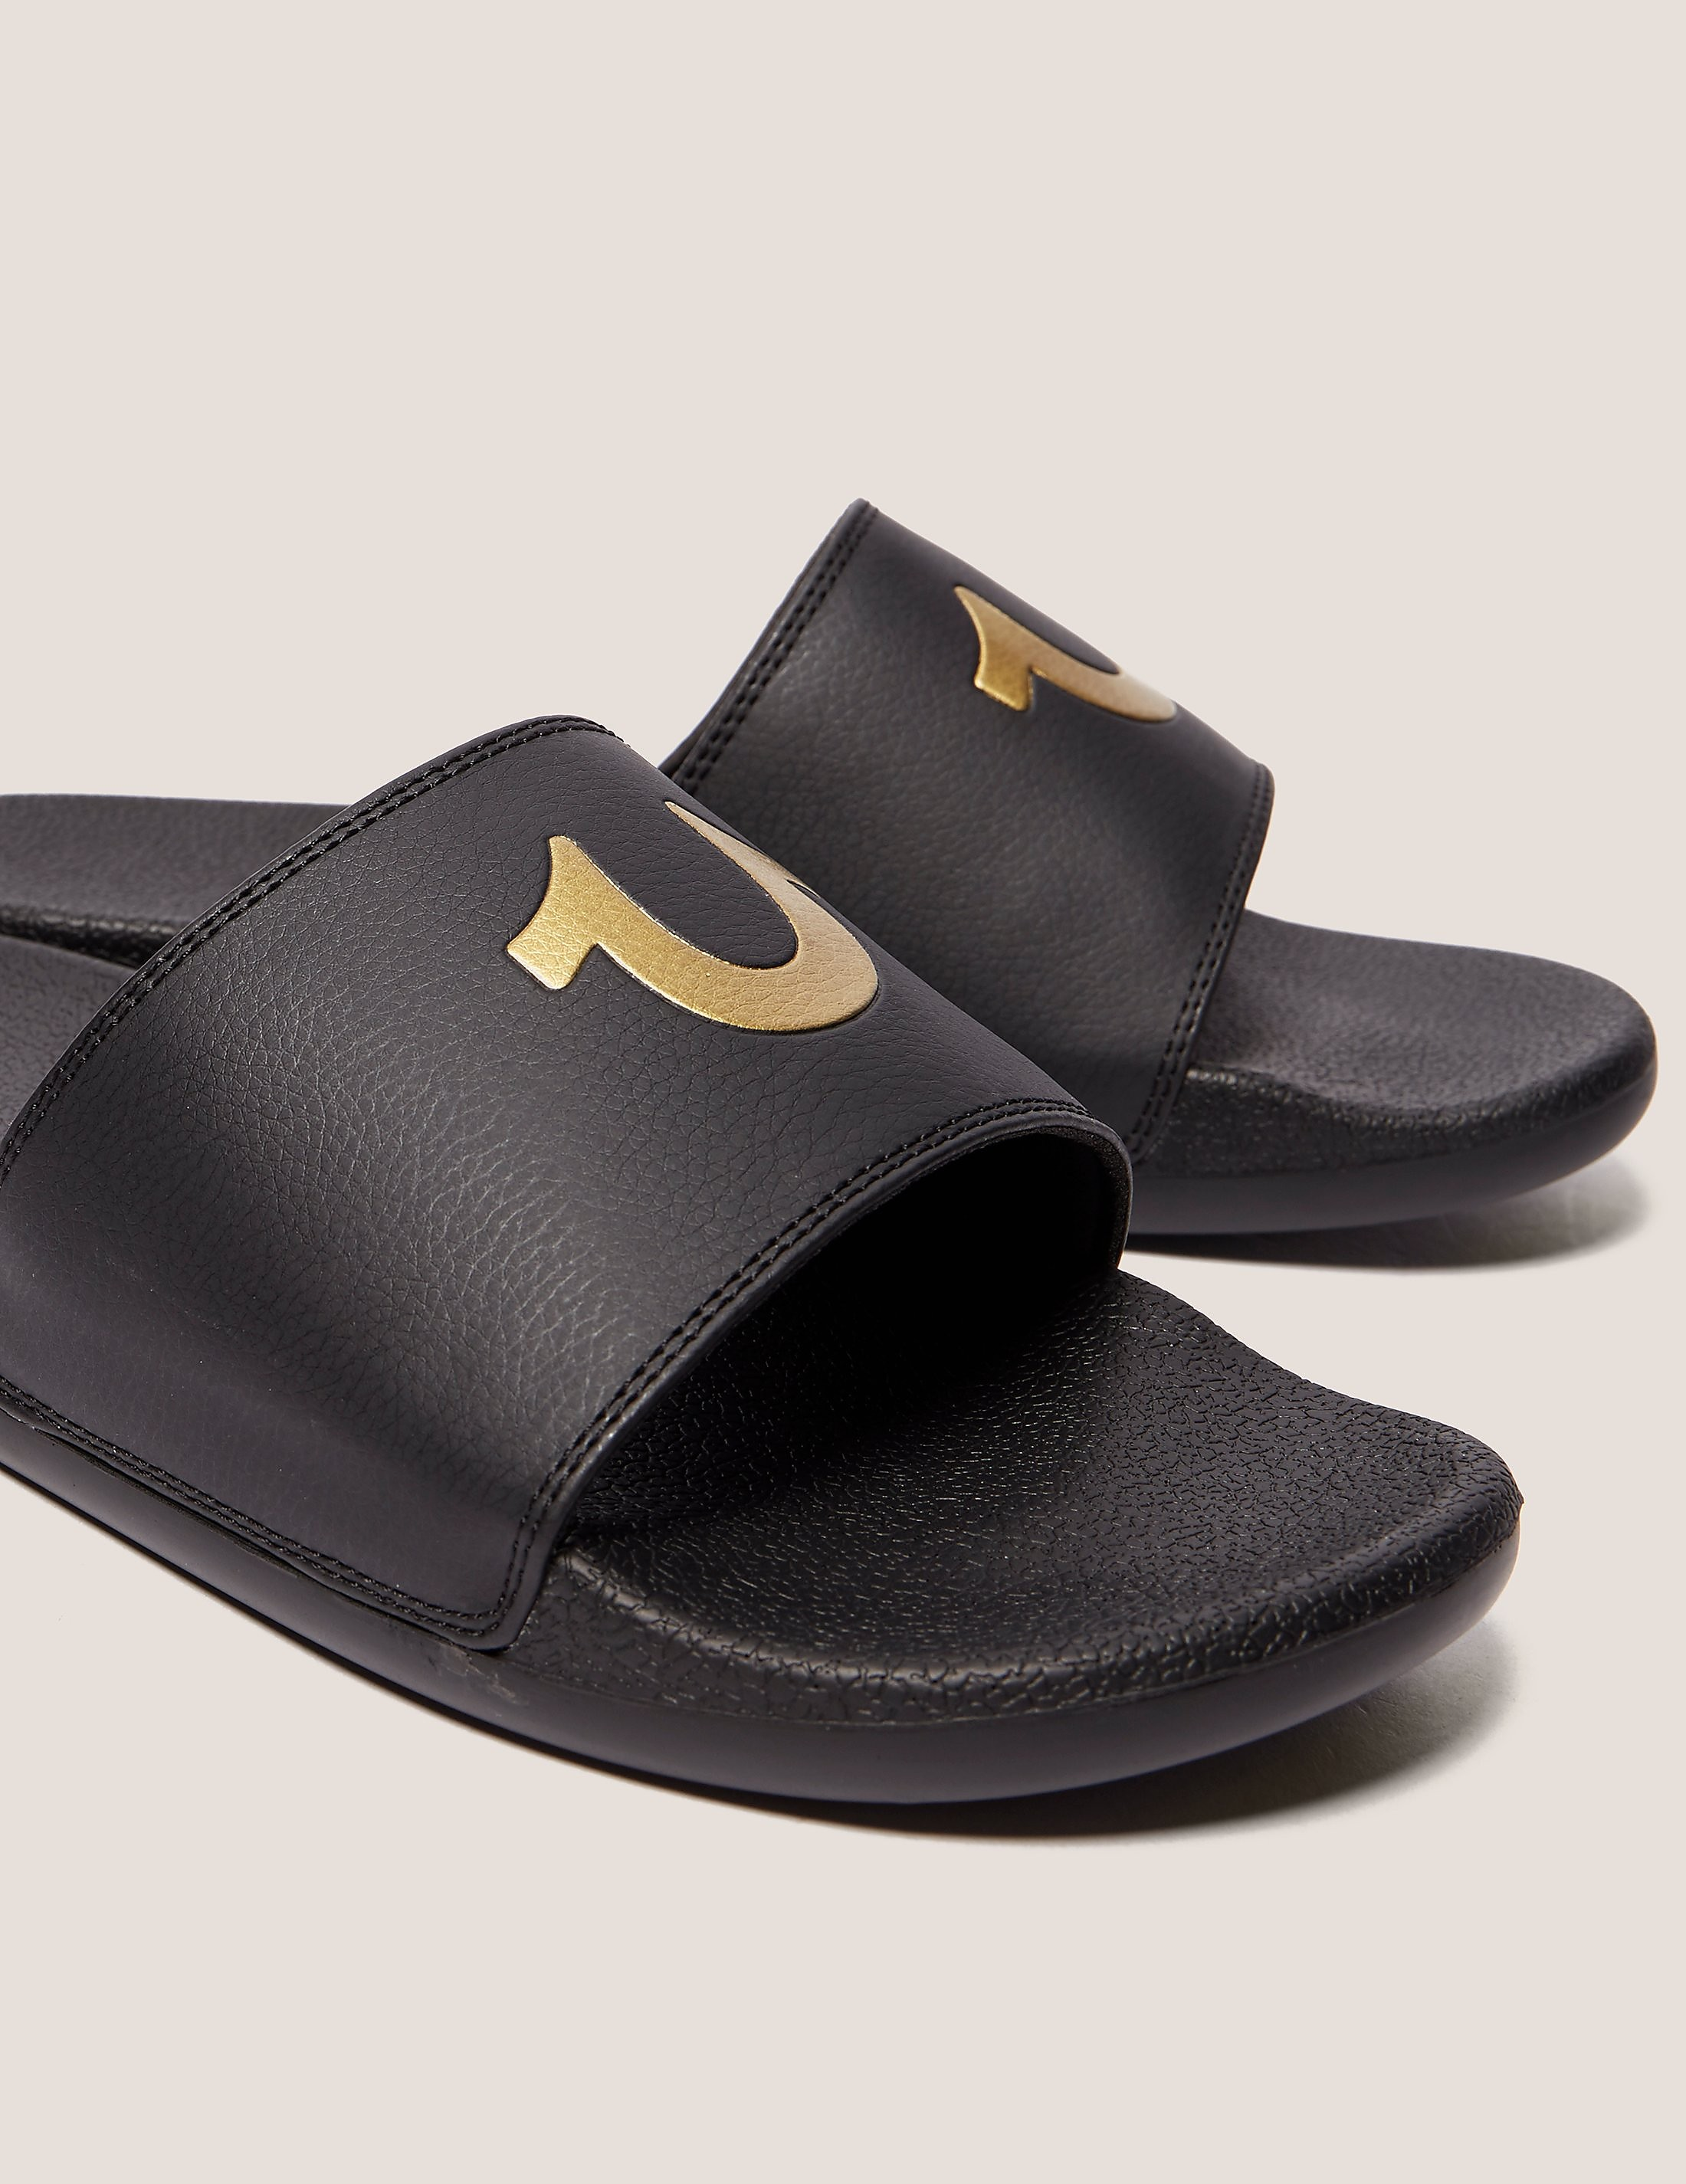 True Religion Horseshoe Slides